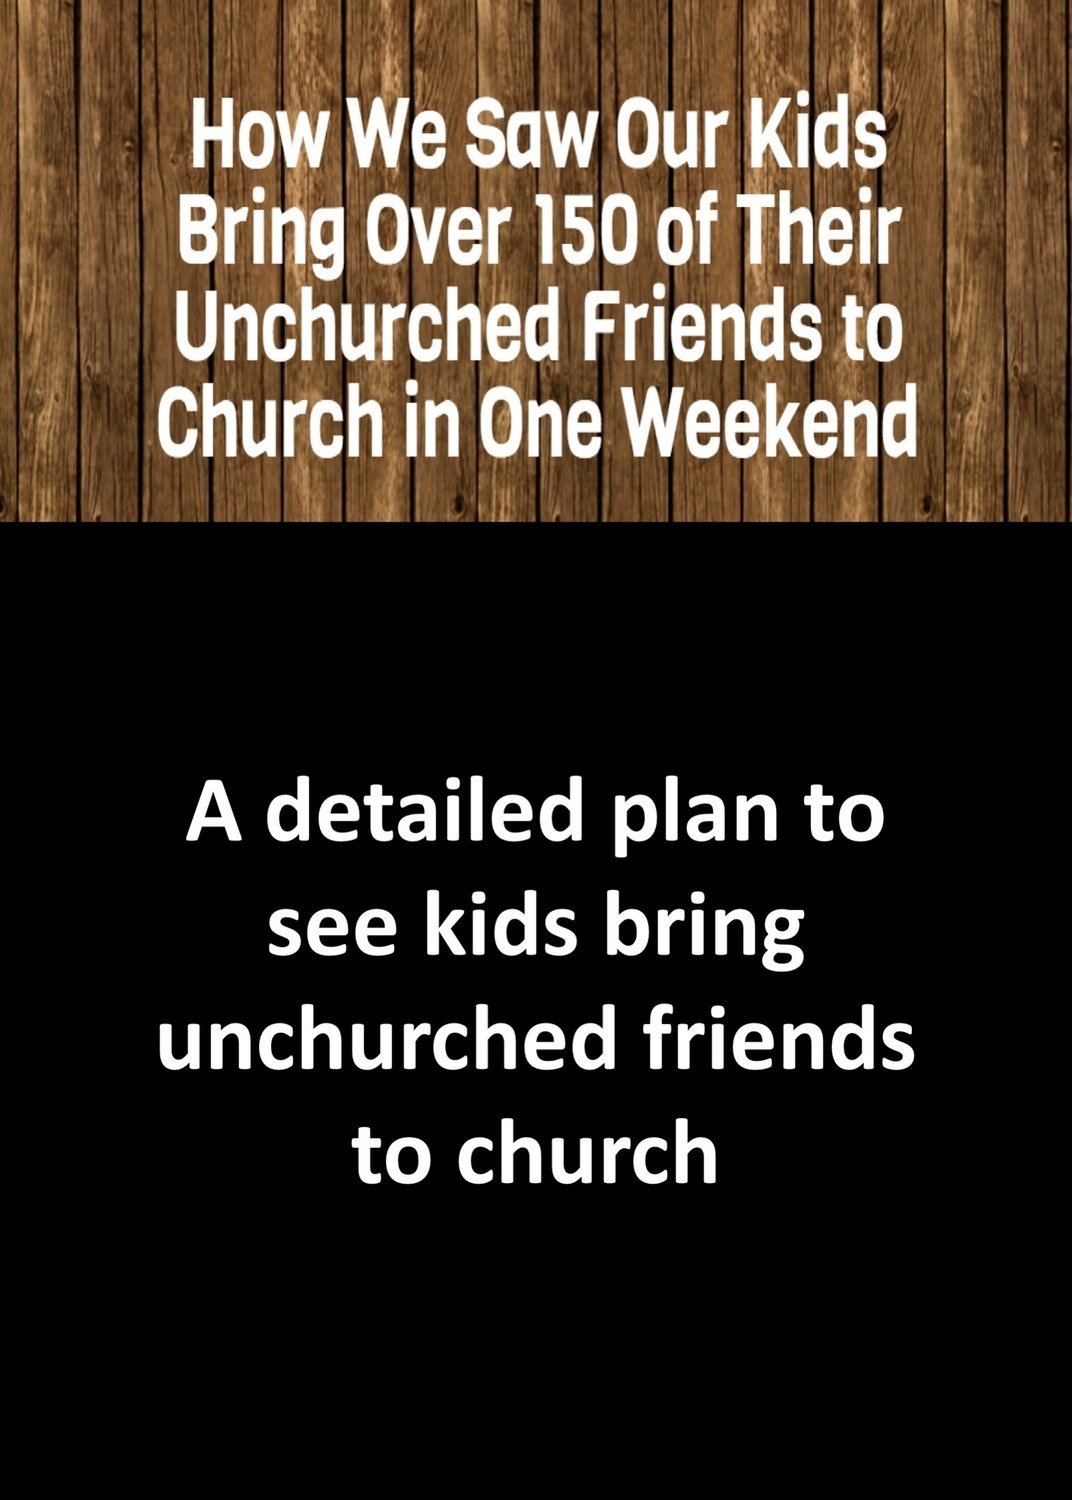 HOW TO SEE KIDS BRING GUESTS TO CHURCH